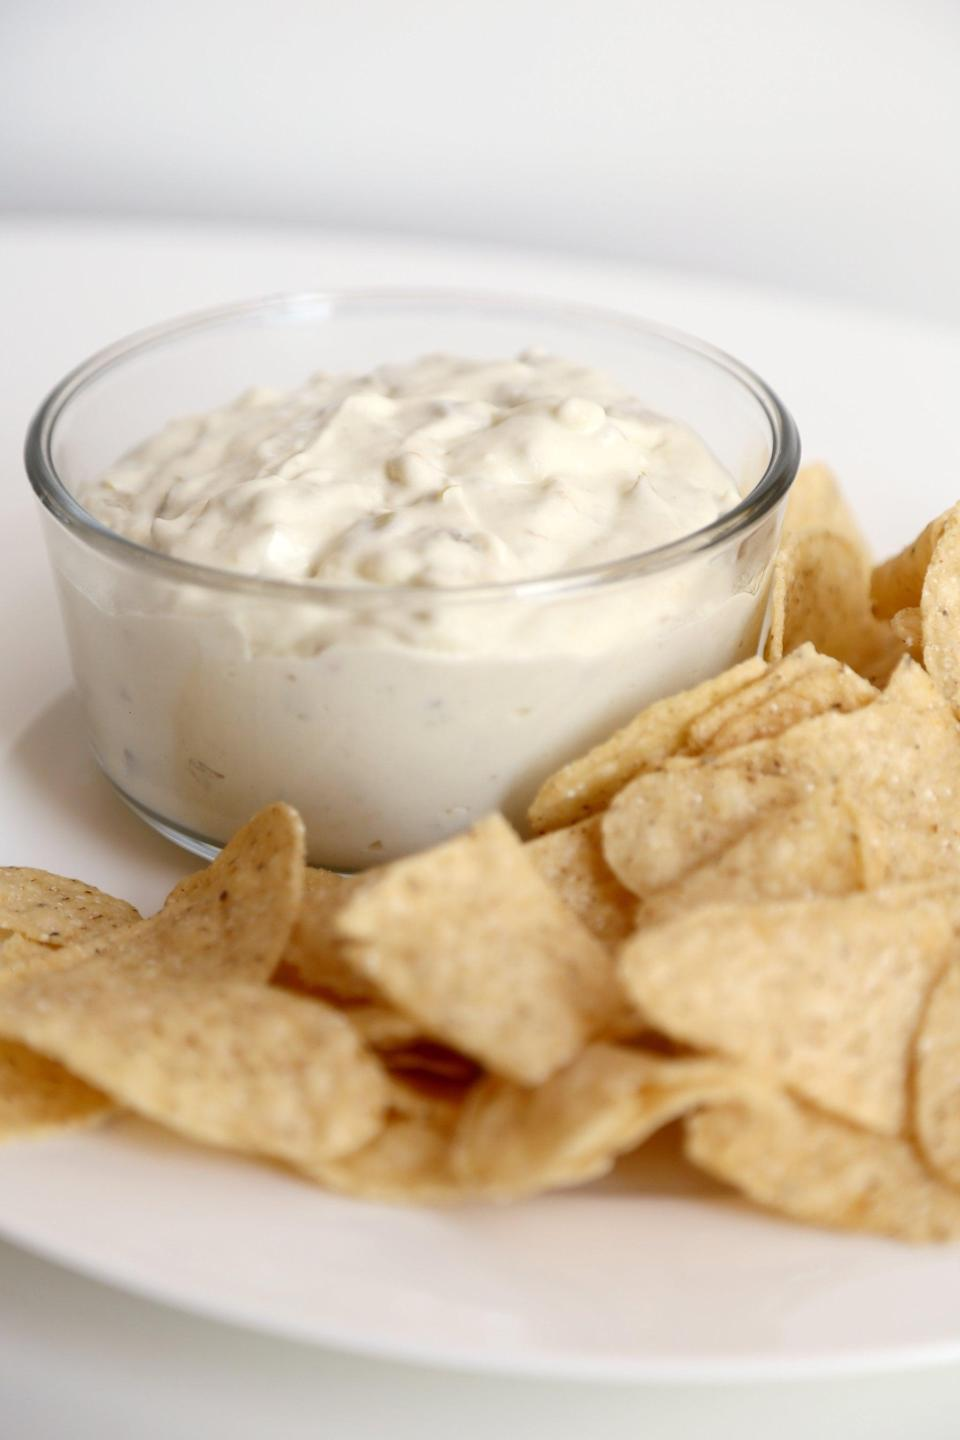 """<p>OK, so this isn't a prepackaged queso from Trader Joe's. But it's made with four cheap ingredients from Trader Joe's (cream cheese, smoked cheddar, fire-roasted diced green chiles, and half and half) and is crazy delicious. </p> <p><strong>Get the recipe:</strong> <a href=""""https://www.popsugar.com/food/How-Microwave-Queso-Dip-40080587"""" class=""""link rapid-noclick-resp"""" rel=""""nofollow noopener"""" target=""""_blank"""" data-ylk=""""slk:microwave queso recipe"""">microwave queso recipe</a></p>"""